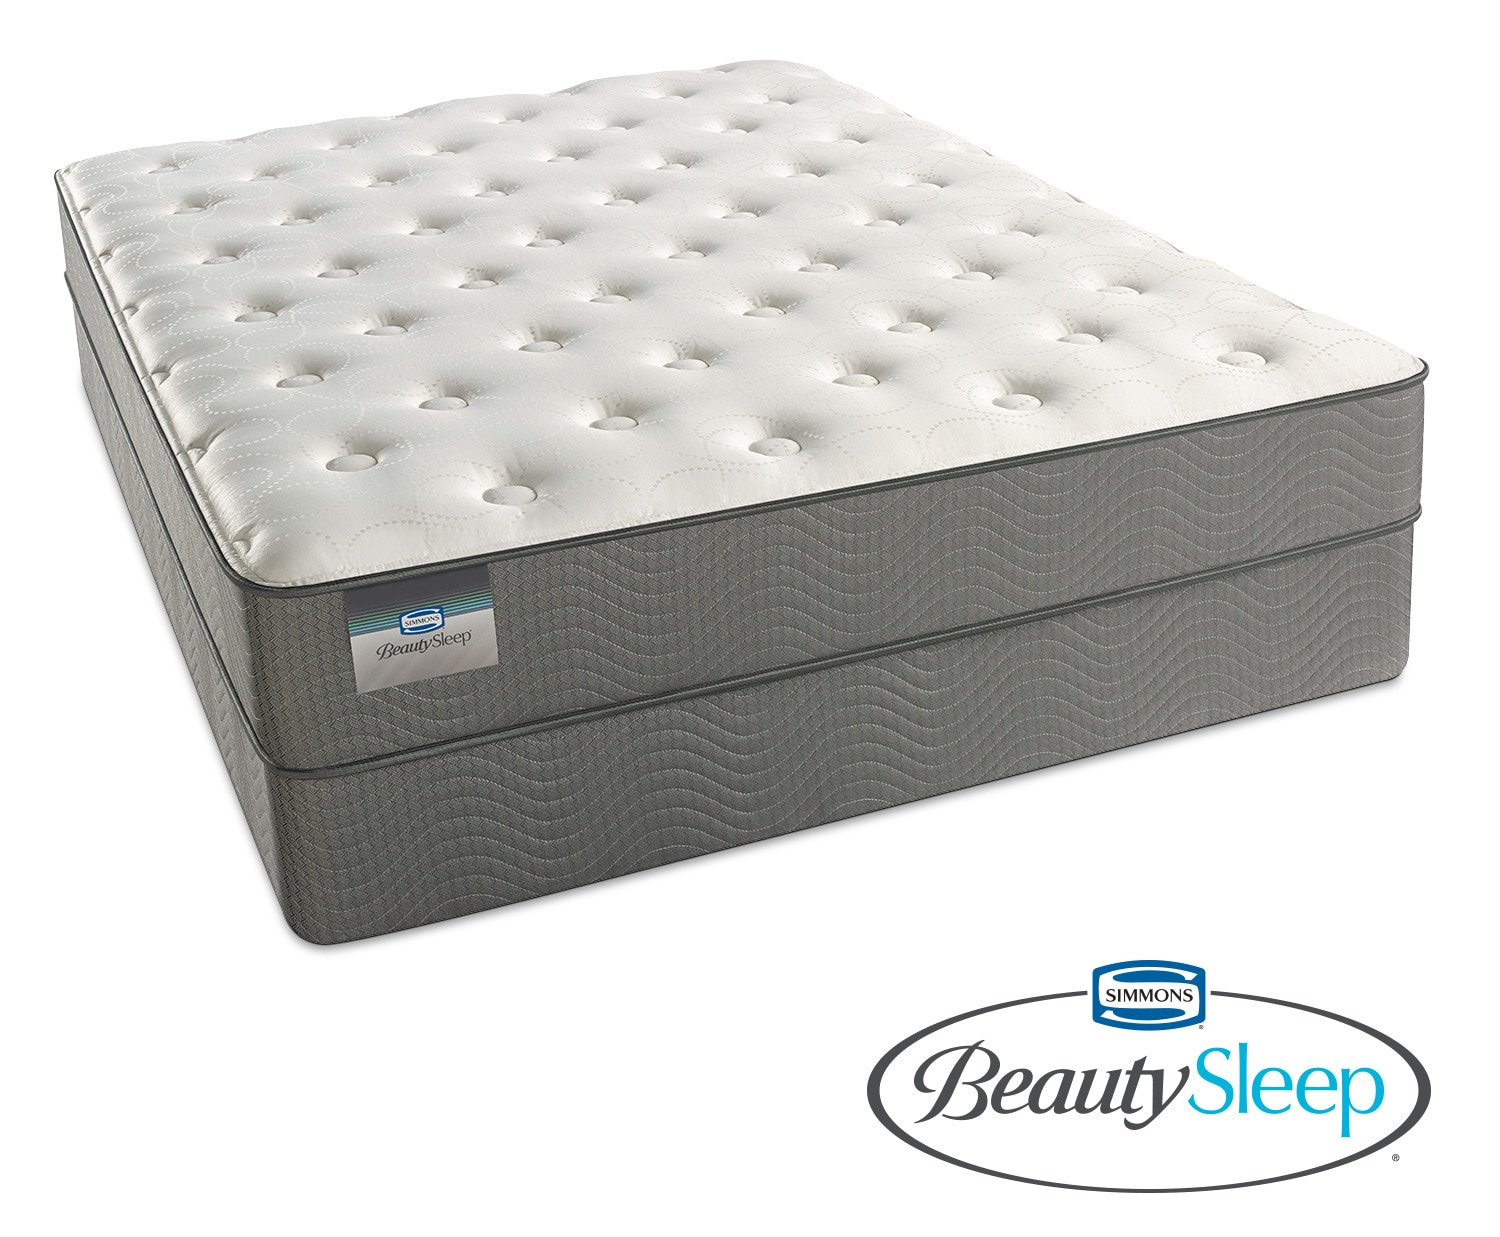 Sapphire Blue Luxury Firm King Mattress and Split Foundation Set